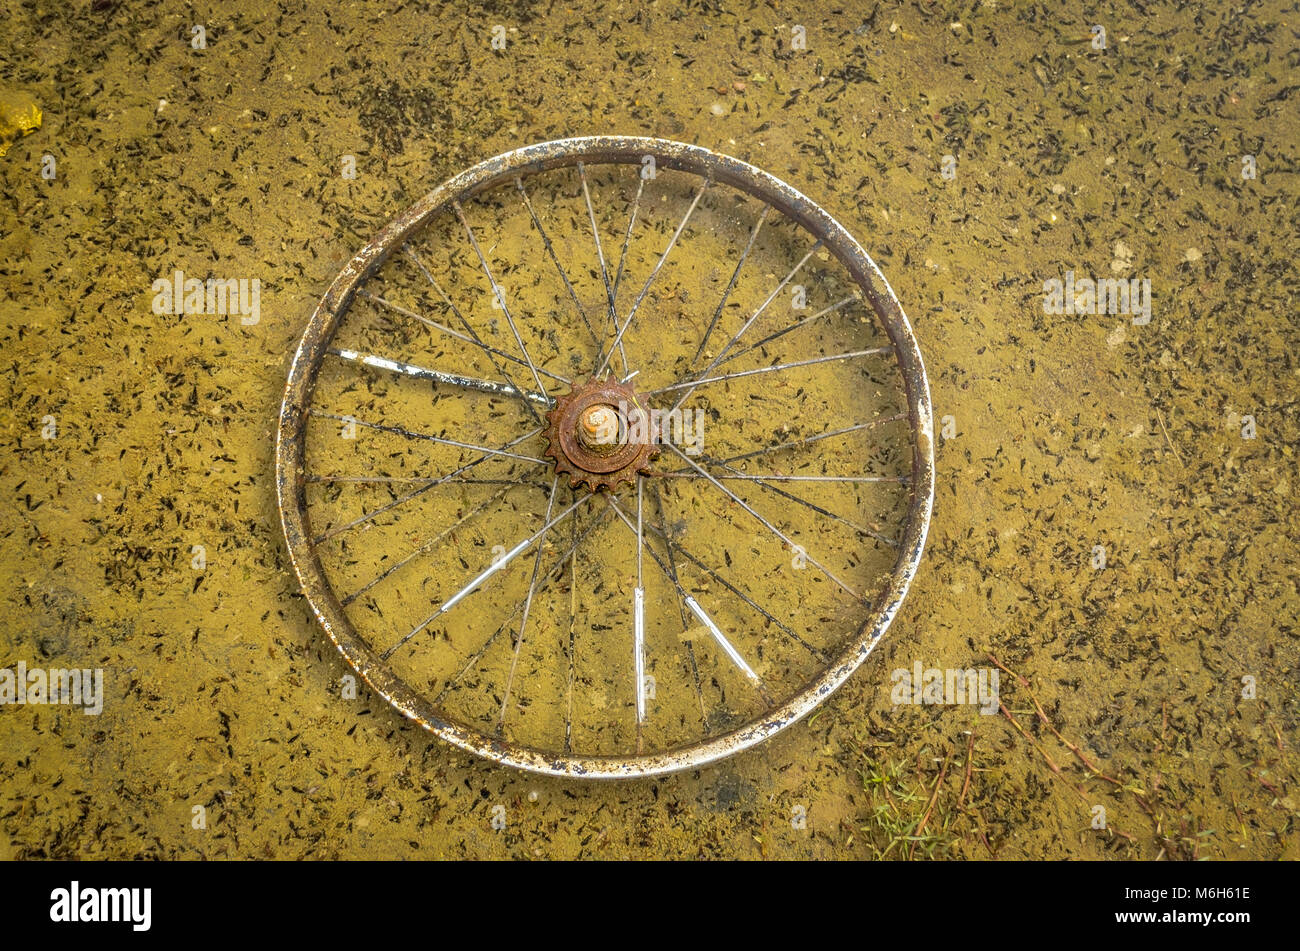 Old, rusty bicycle wheel in dirty water. Water pollution. - Stock Image